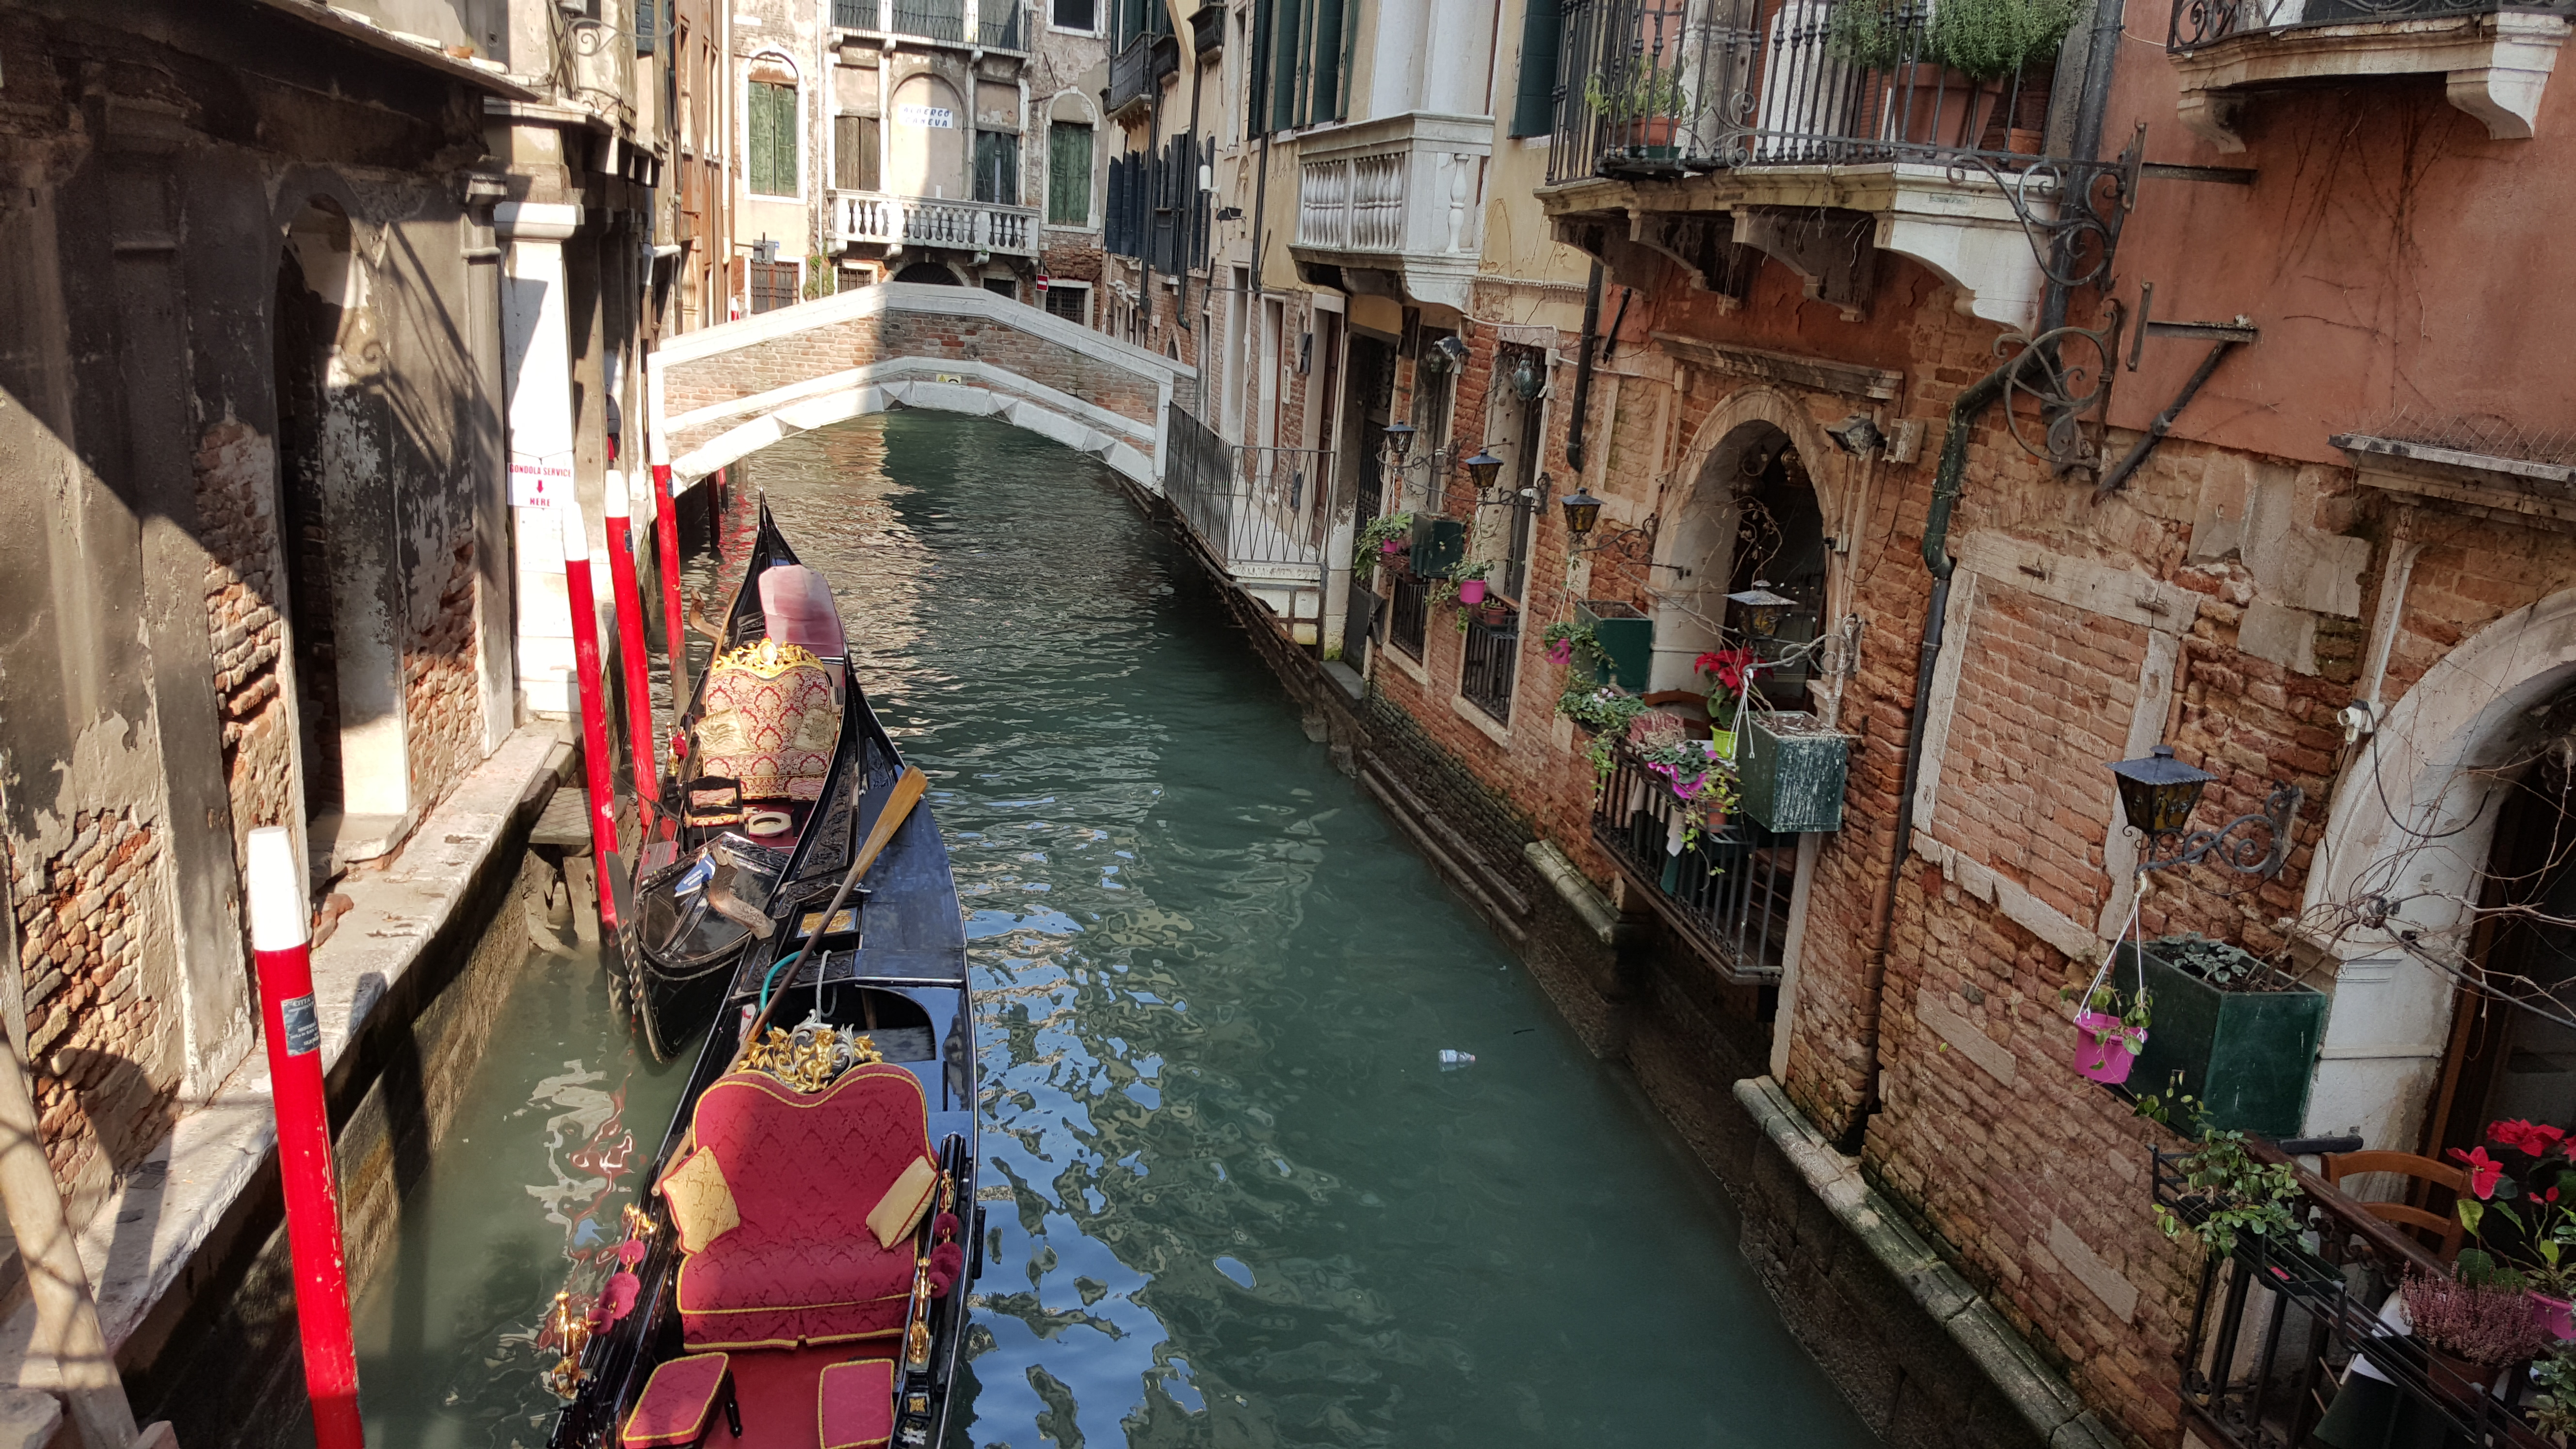 On my way to Rialto Bridge from Piazza San Marco